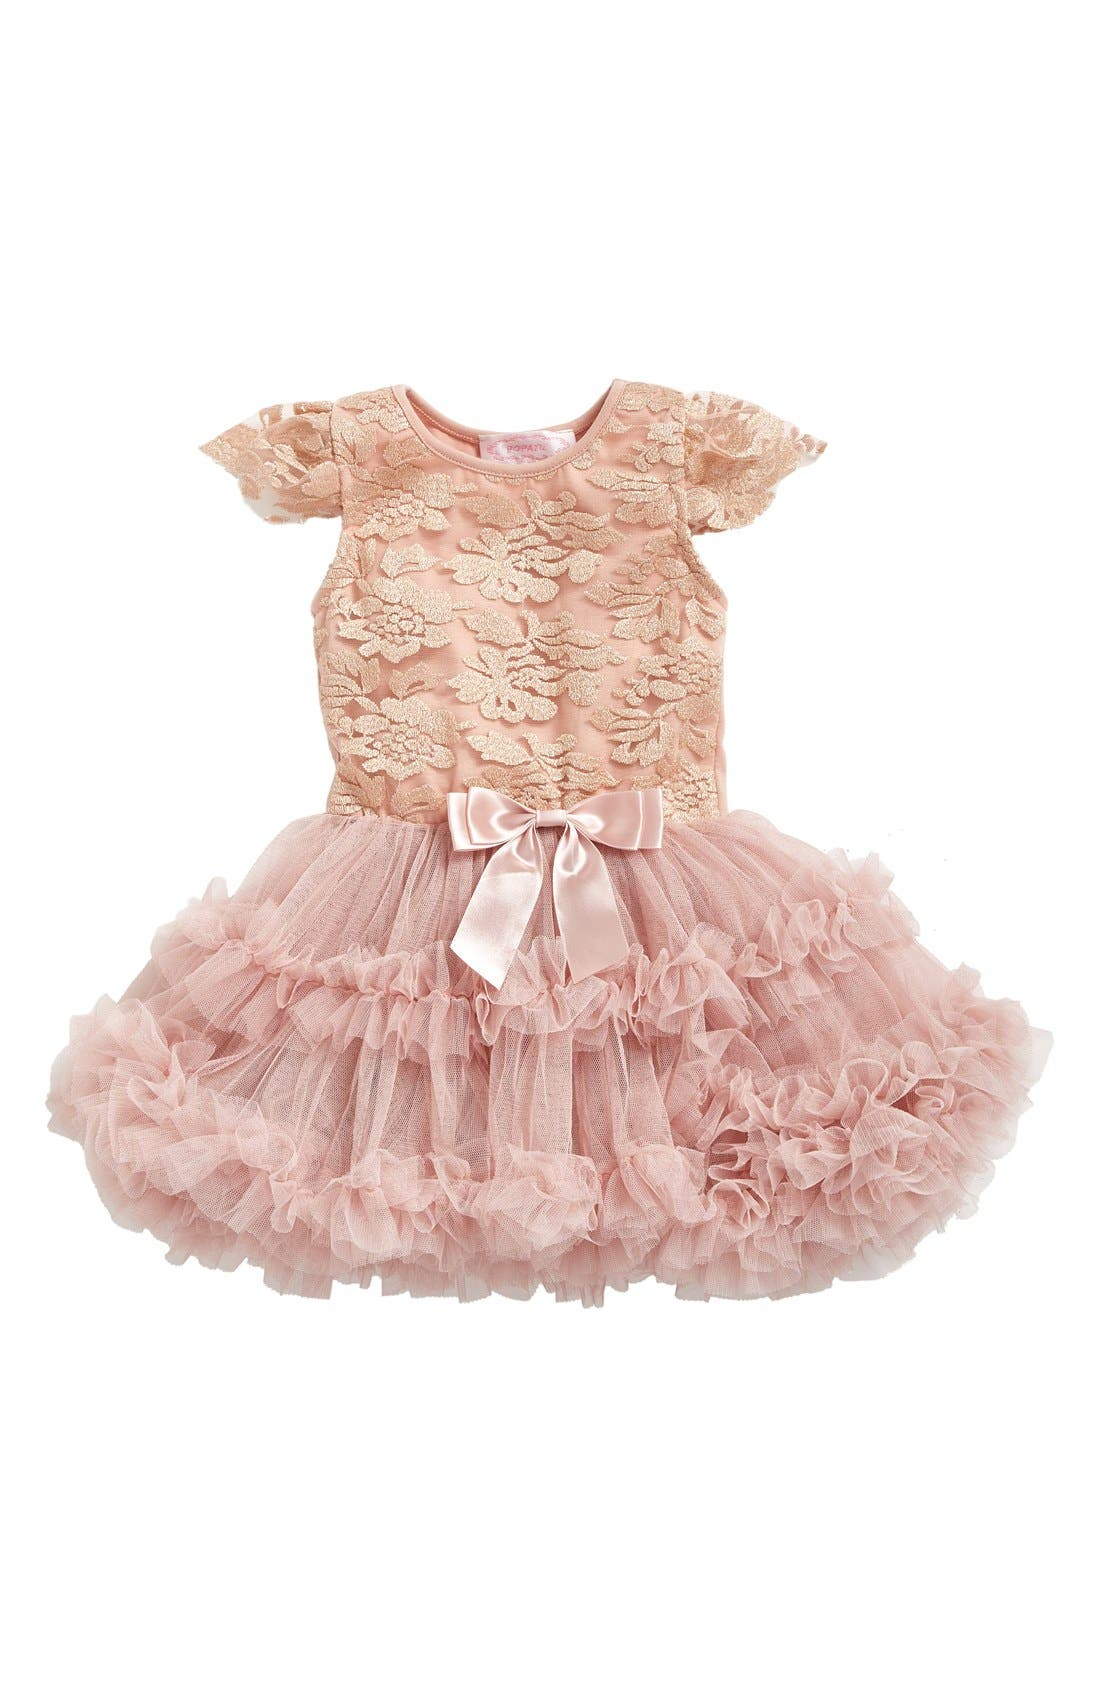 Lace Pettidress,                             Main thumbnail 1, color,                             Dusty Pink